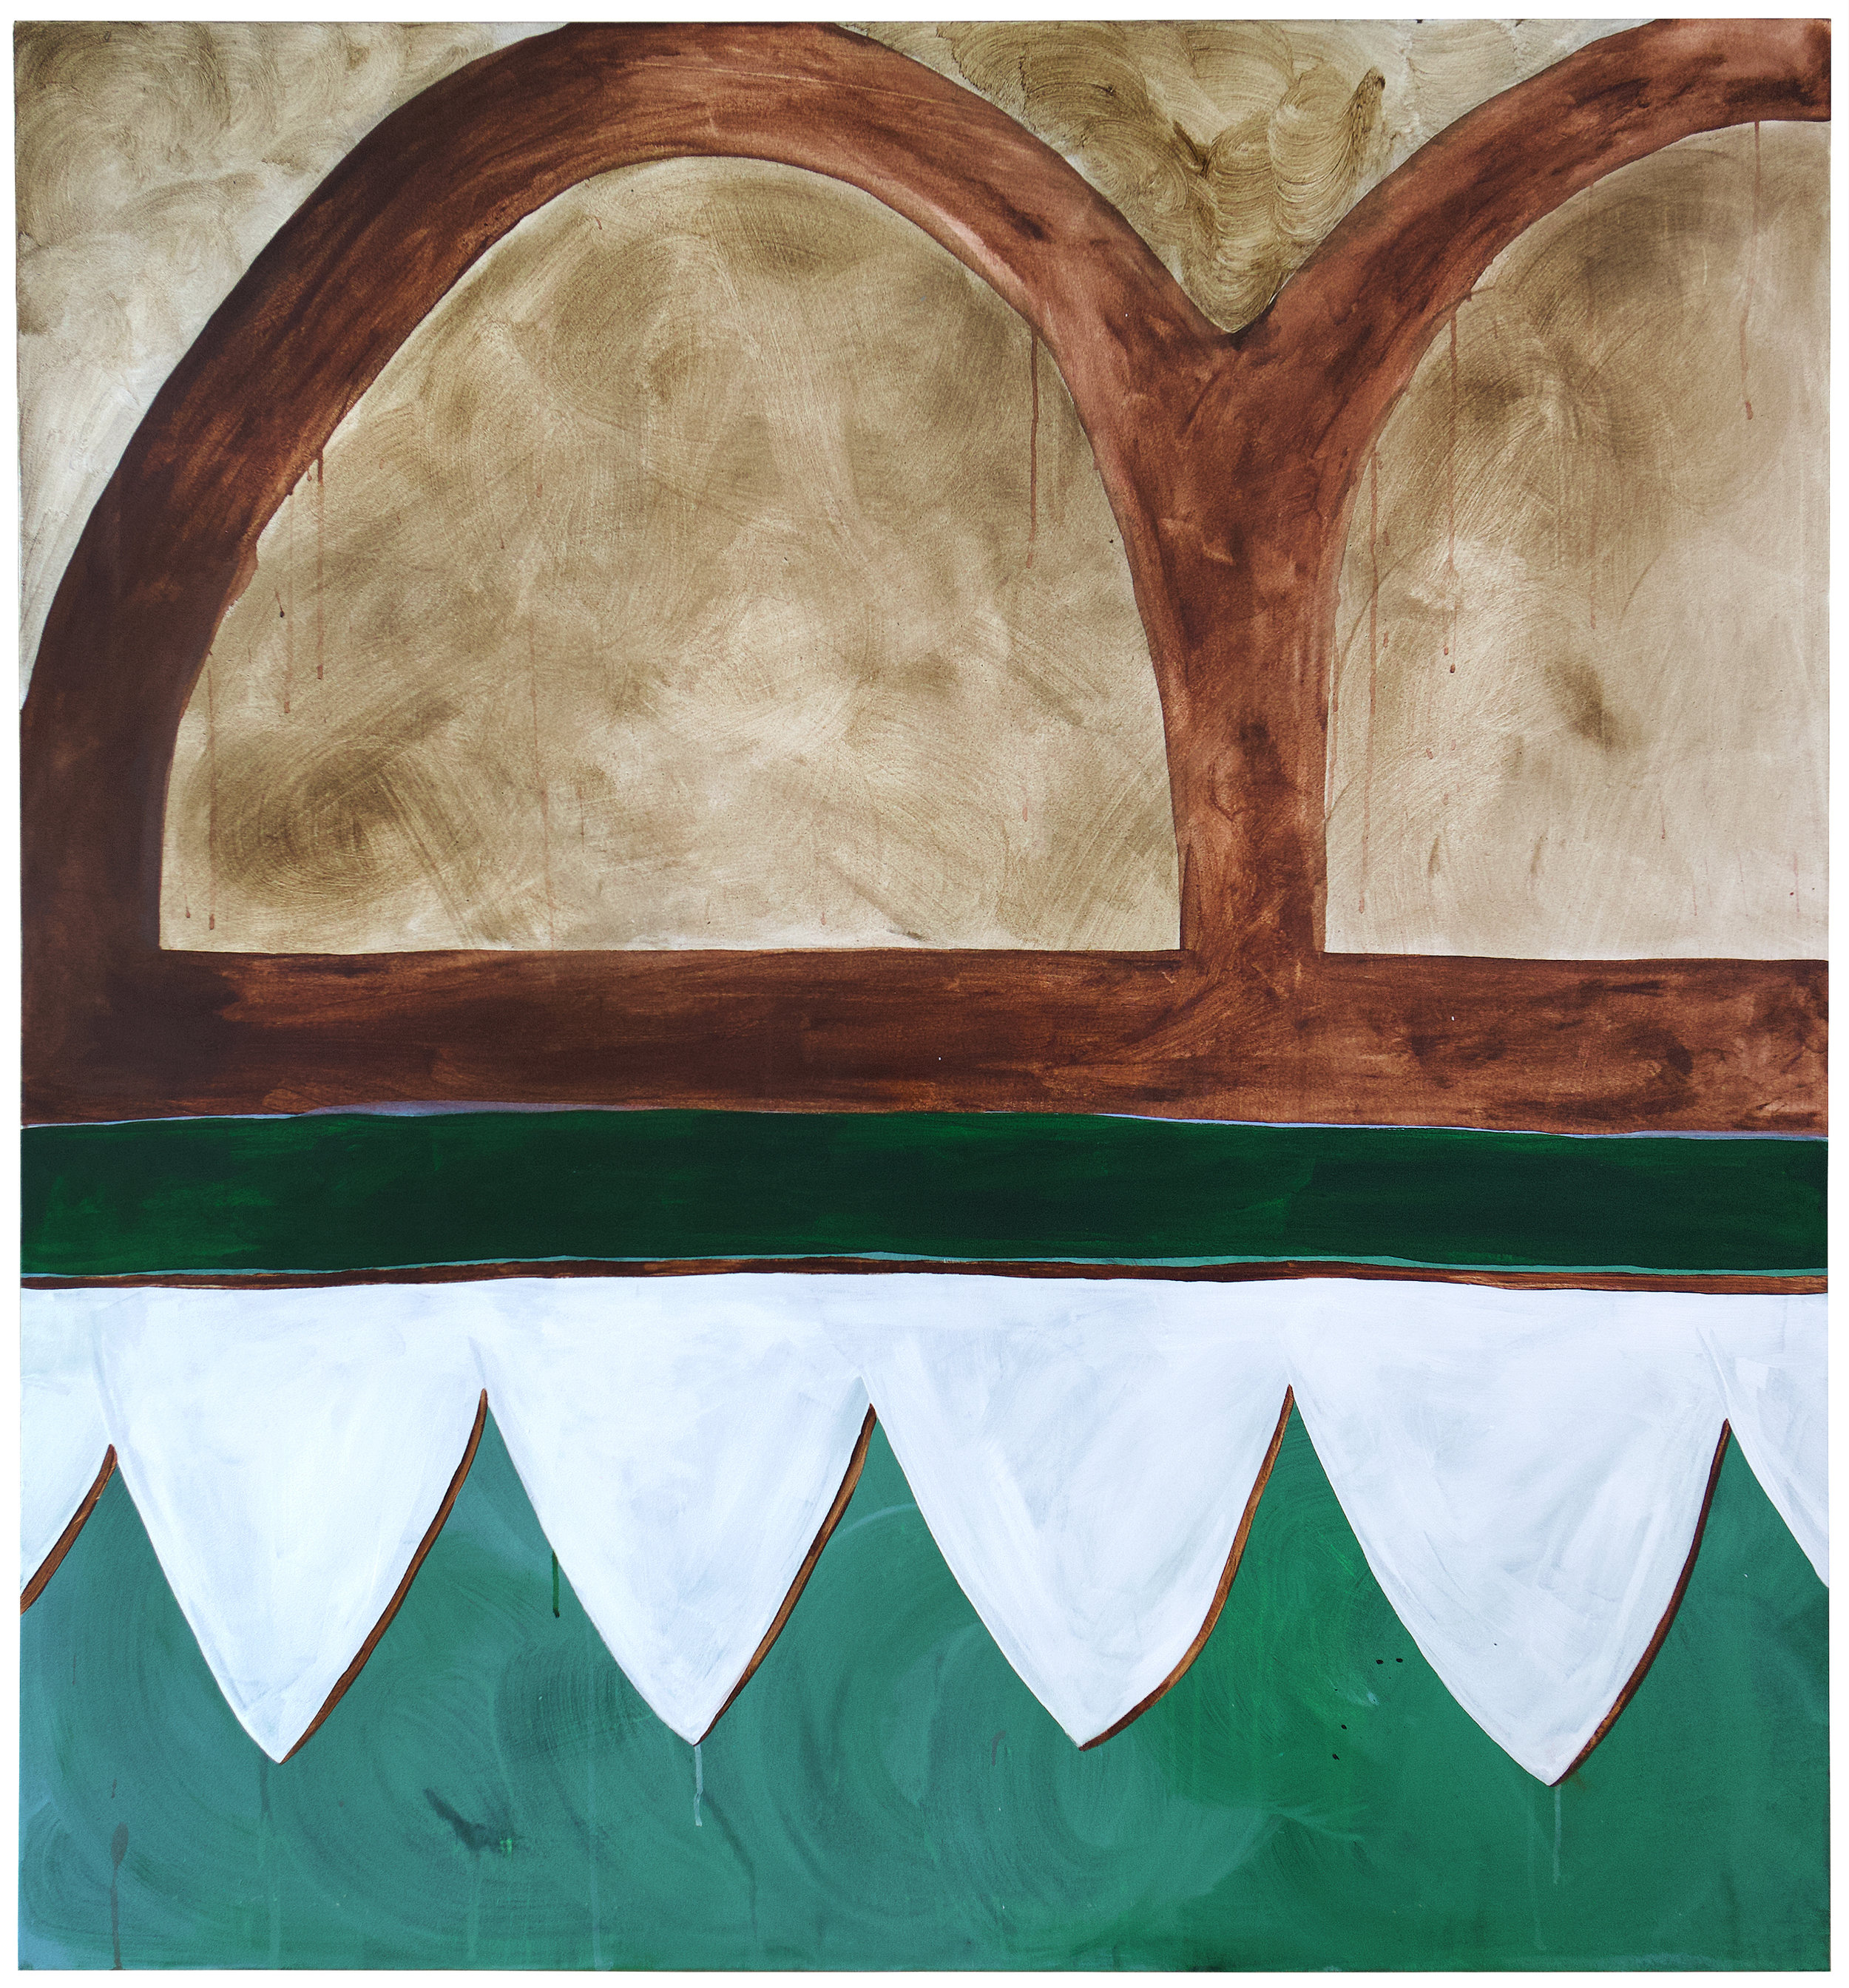 Sophie Lourdes Knight  The Arches , 2018  acrylic on canvas 60h x 56w in